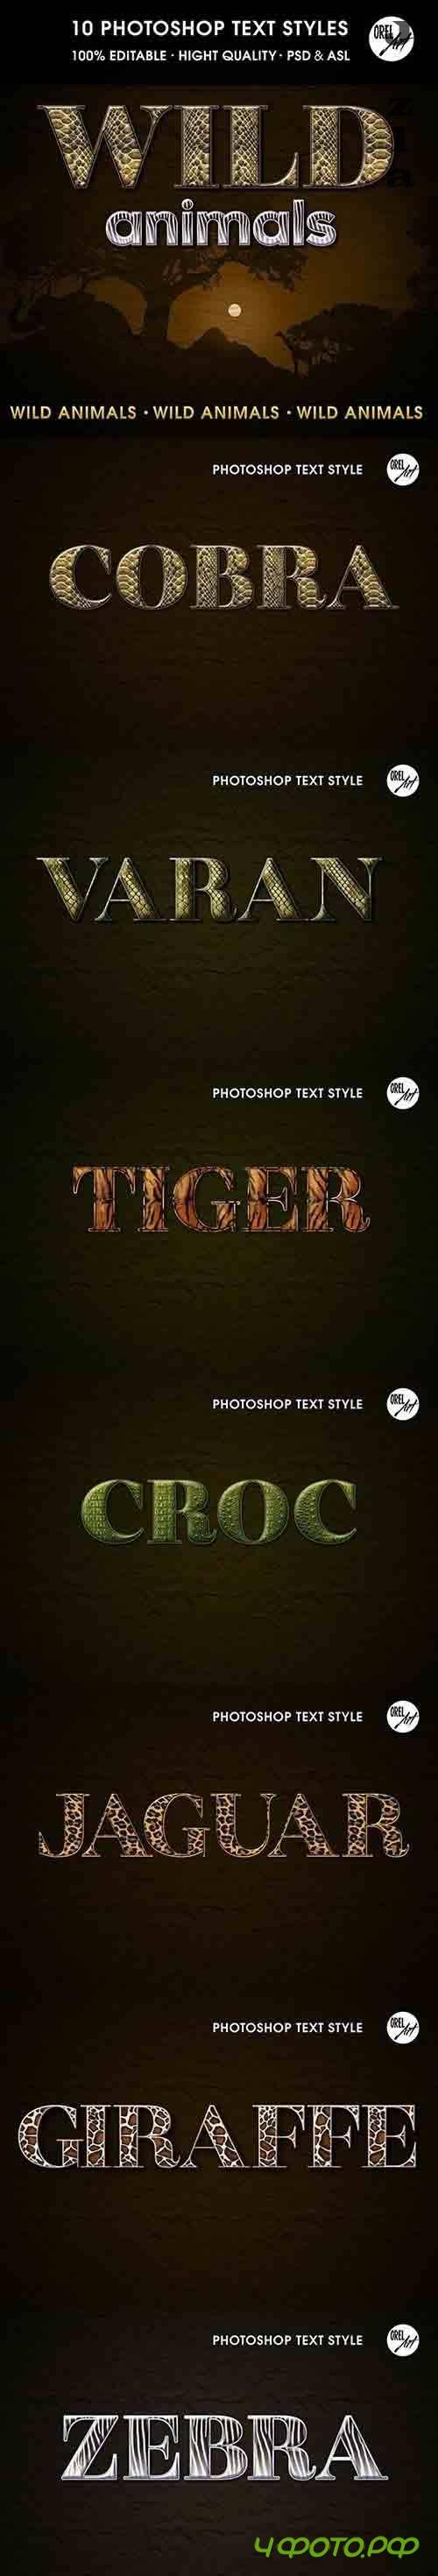 GraphicRiver - Wild Animals Text Styles 30385880